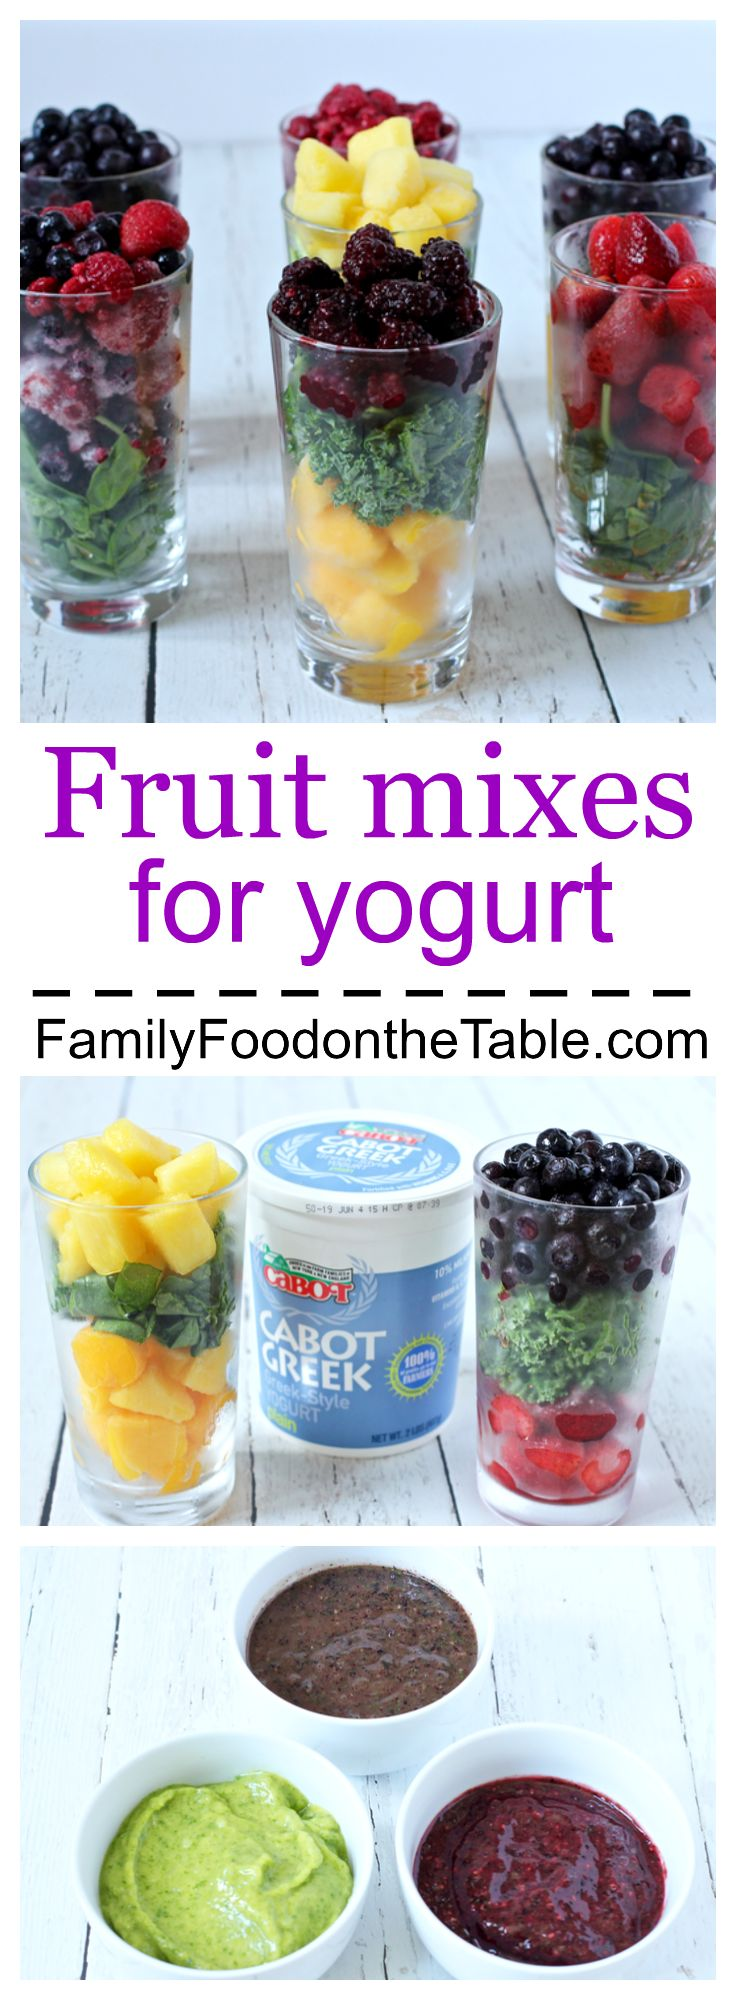 Homemade fruit mixes to stir into yogurt - great for babies, toddlers and kids! | Family Food on the Table